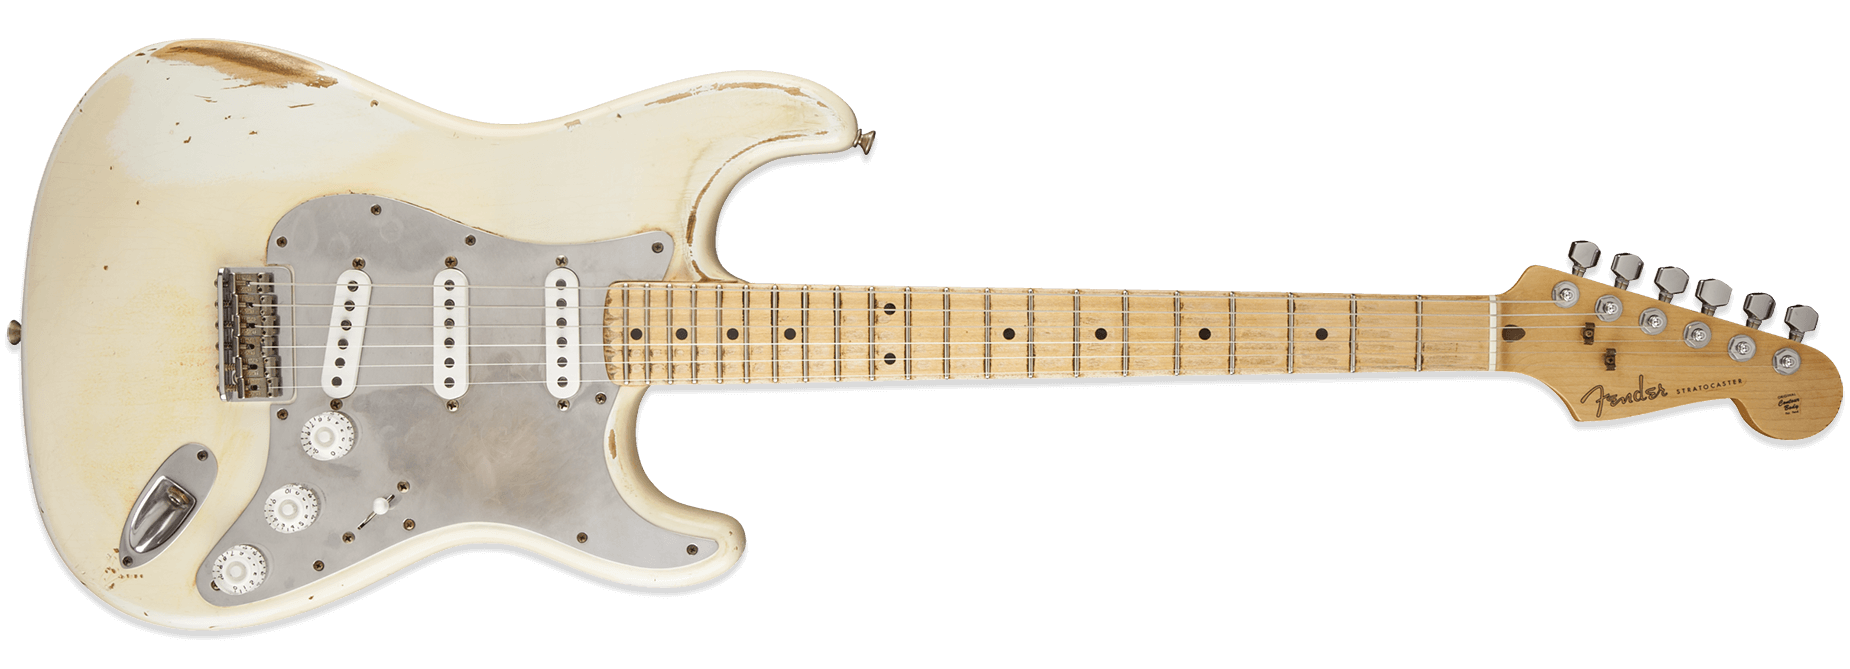 Fender Custom Shop Nile Rodgers Hitmaker Stratocaster